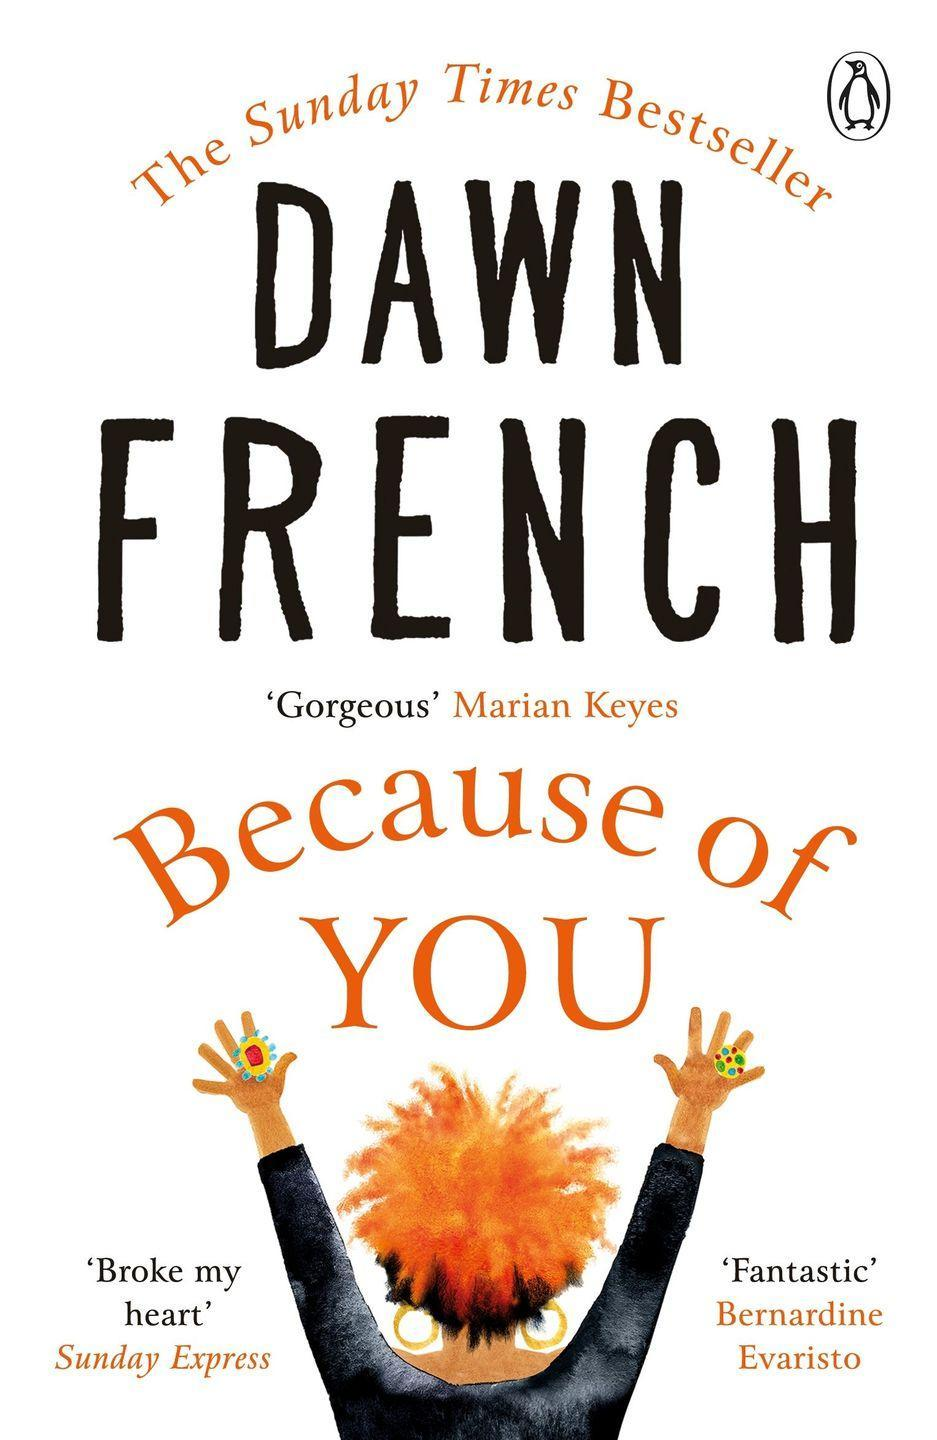 """<p> Dawn French's fourth novel is a bright, brilliant and heartbreaking tale of two mothers, two babies and the far-reaching consequences of one fateful day. </p><p>""""Because of You by Dawn French is a warm, compassionate, funny novel, which looks at motherhood and also challenges assumptions about the maternal bond"""" - Bernardine Evaristo</p><p><a class=""""link rapid-noclick-resp"""" href=""""https://www.amazon.co.uk/Because-You-instant-Sunday-bestseller/dp/0718159314?tag=hearstuk-yahoo-21&ascsubtag=%5Bartid%7C1927.g.35797924%5Bsrc%7Cyahoo-uk"""" rel=""""nofollow noopener"""" target=""""_blank"""" data-ylk=""""slk:SHOP NOW"""">SHOP NOW</a></p>"""